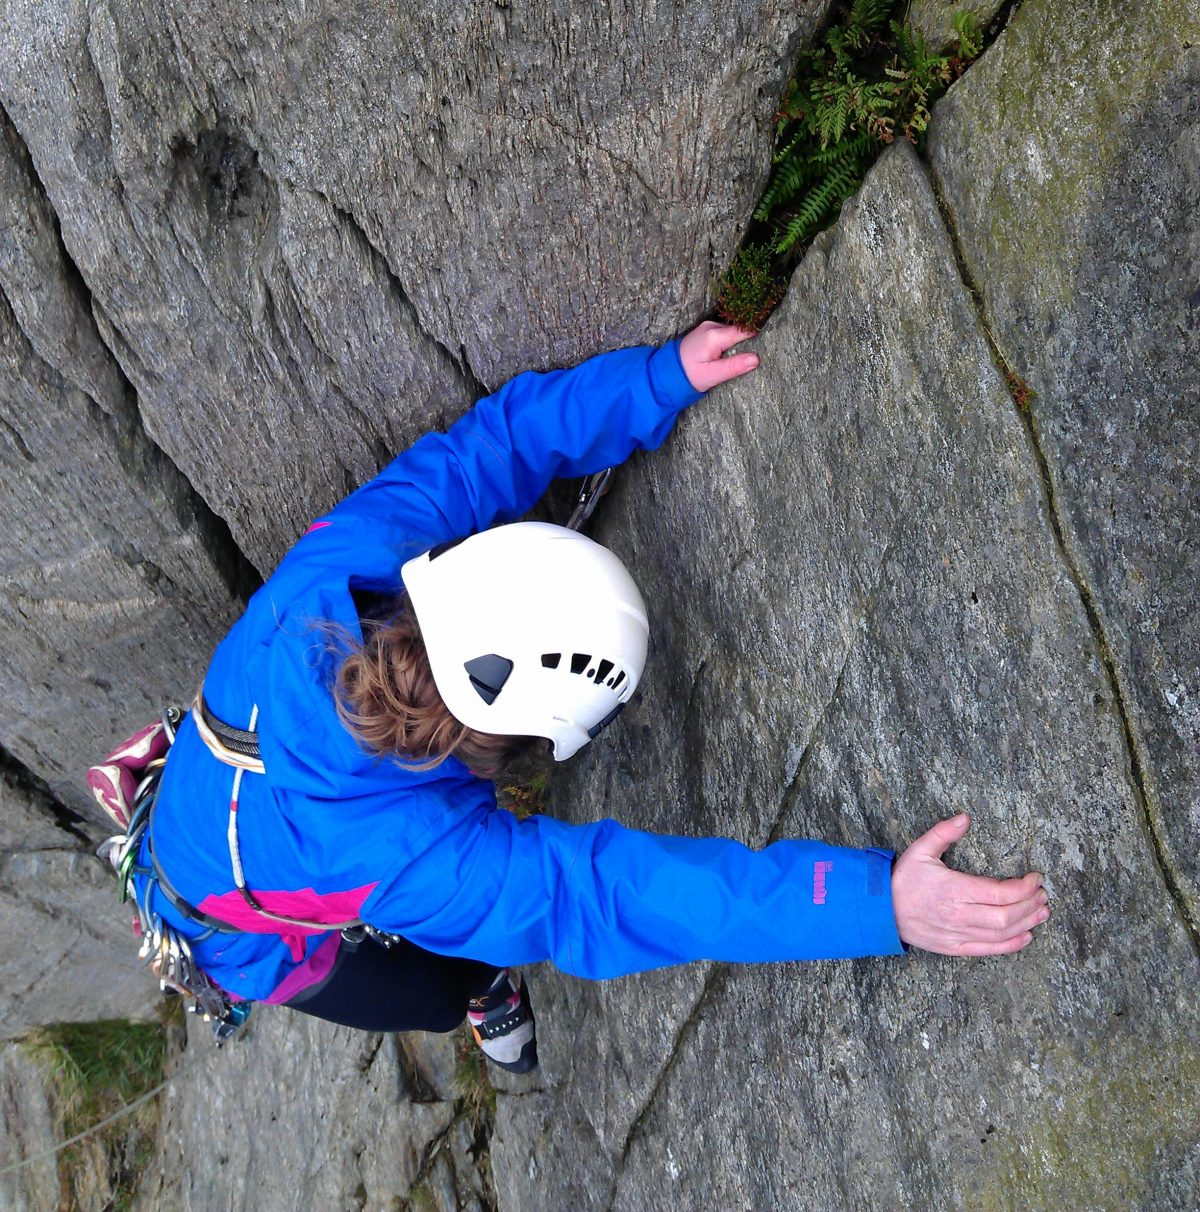 Multi pitch climbing introduction